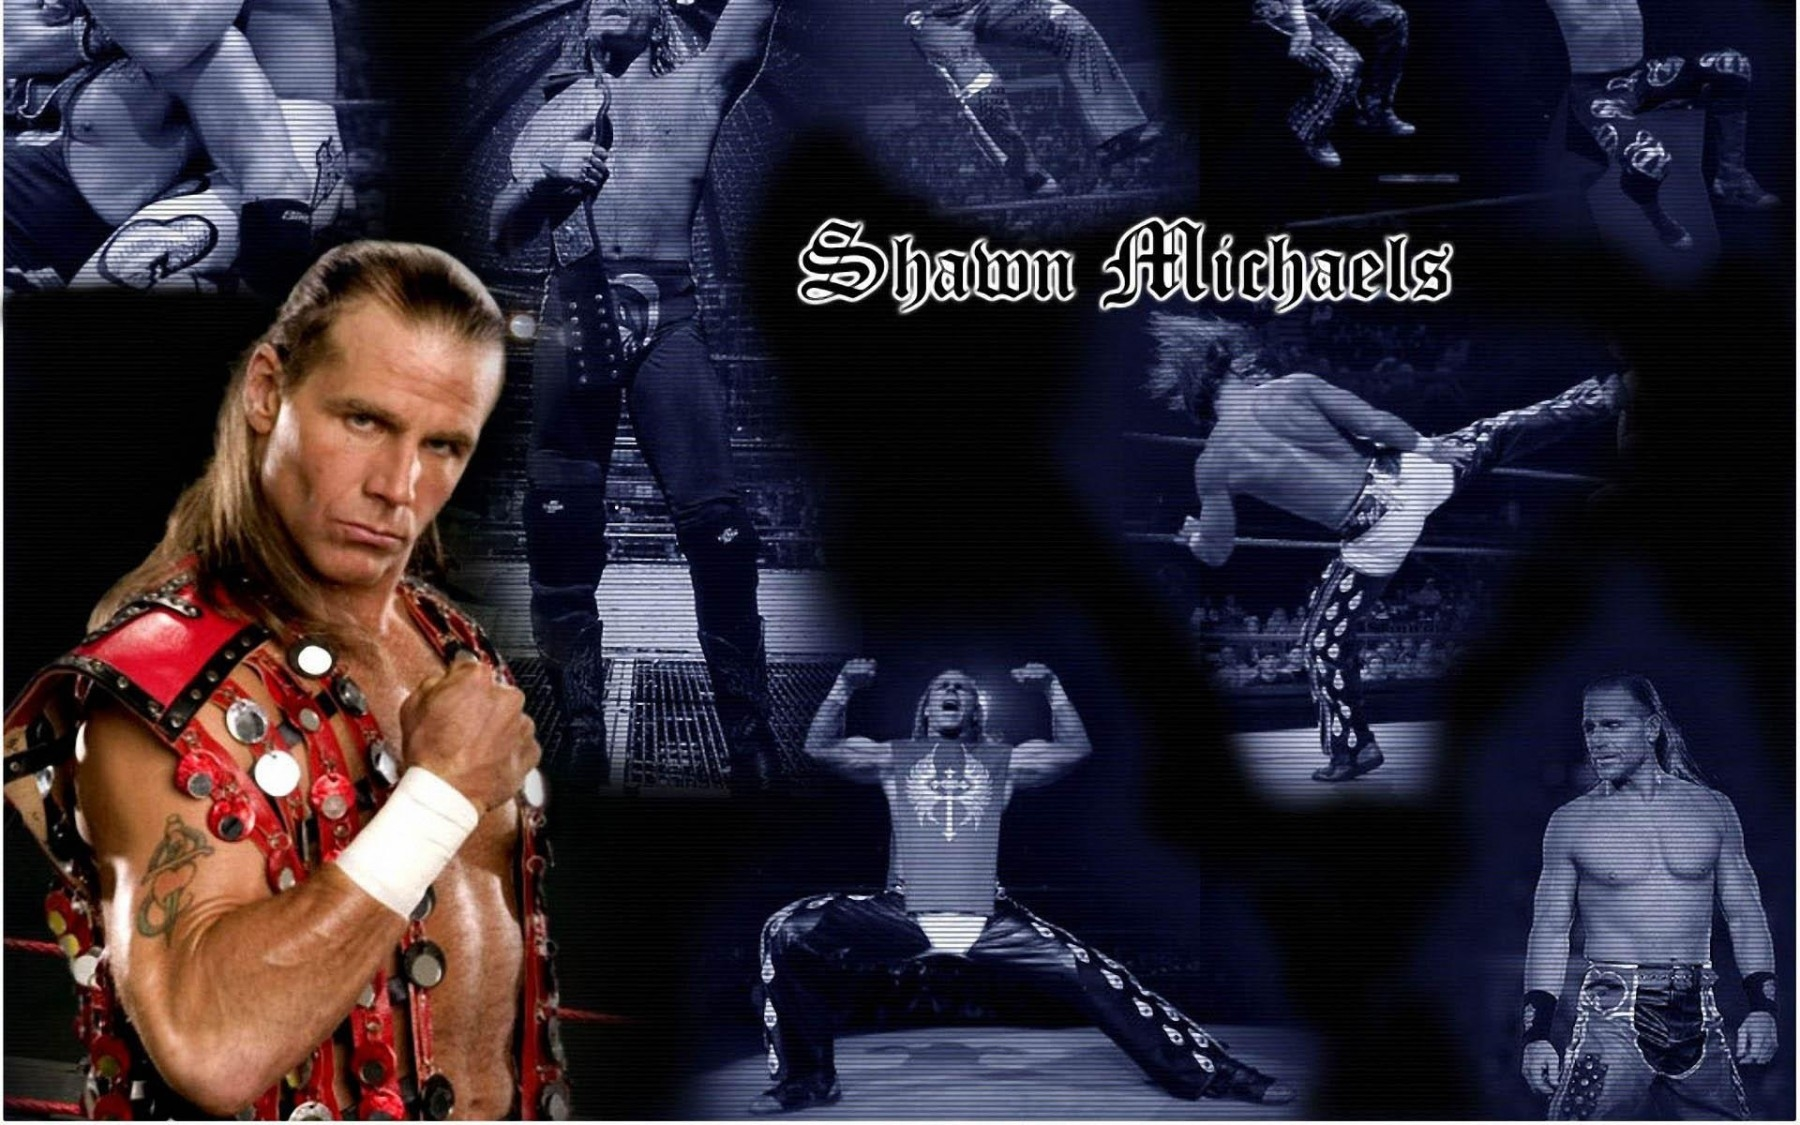 shawn michaels hbk desktop free wallpaper